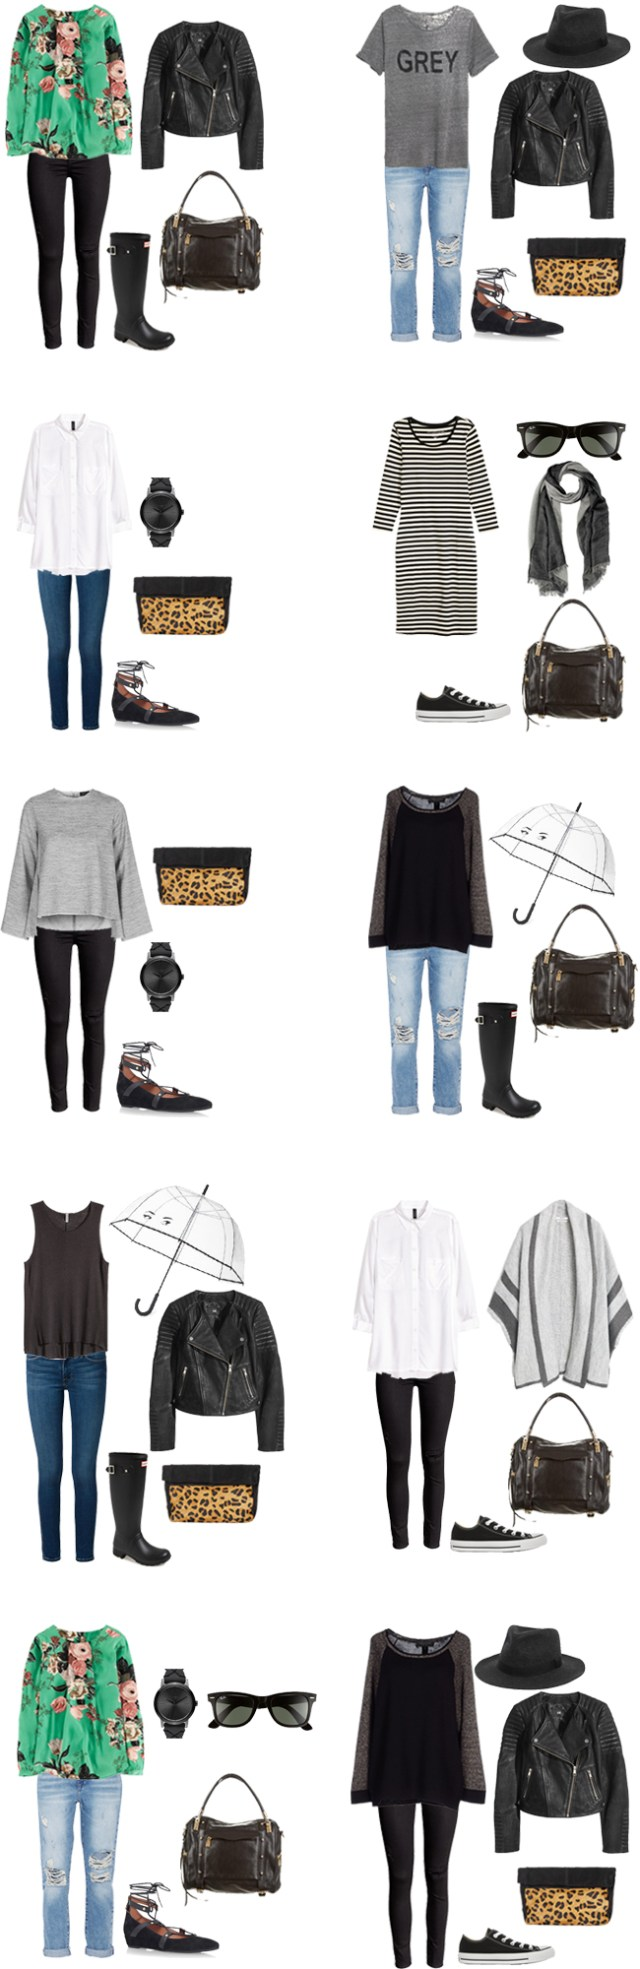 What to Wear in Dublin Outfit Options 11-20 #travellight #packinglight #traveltrips #packinglist #travel